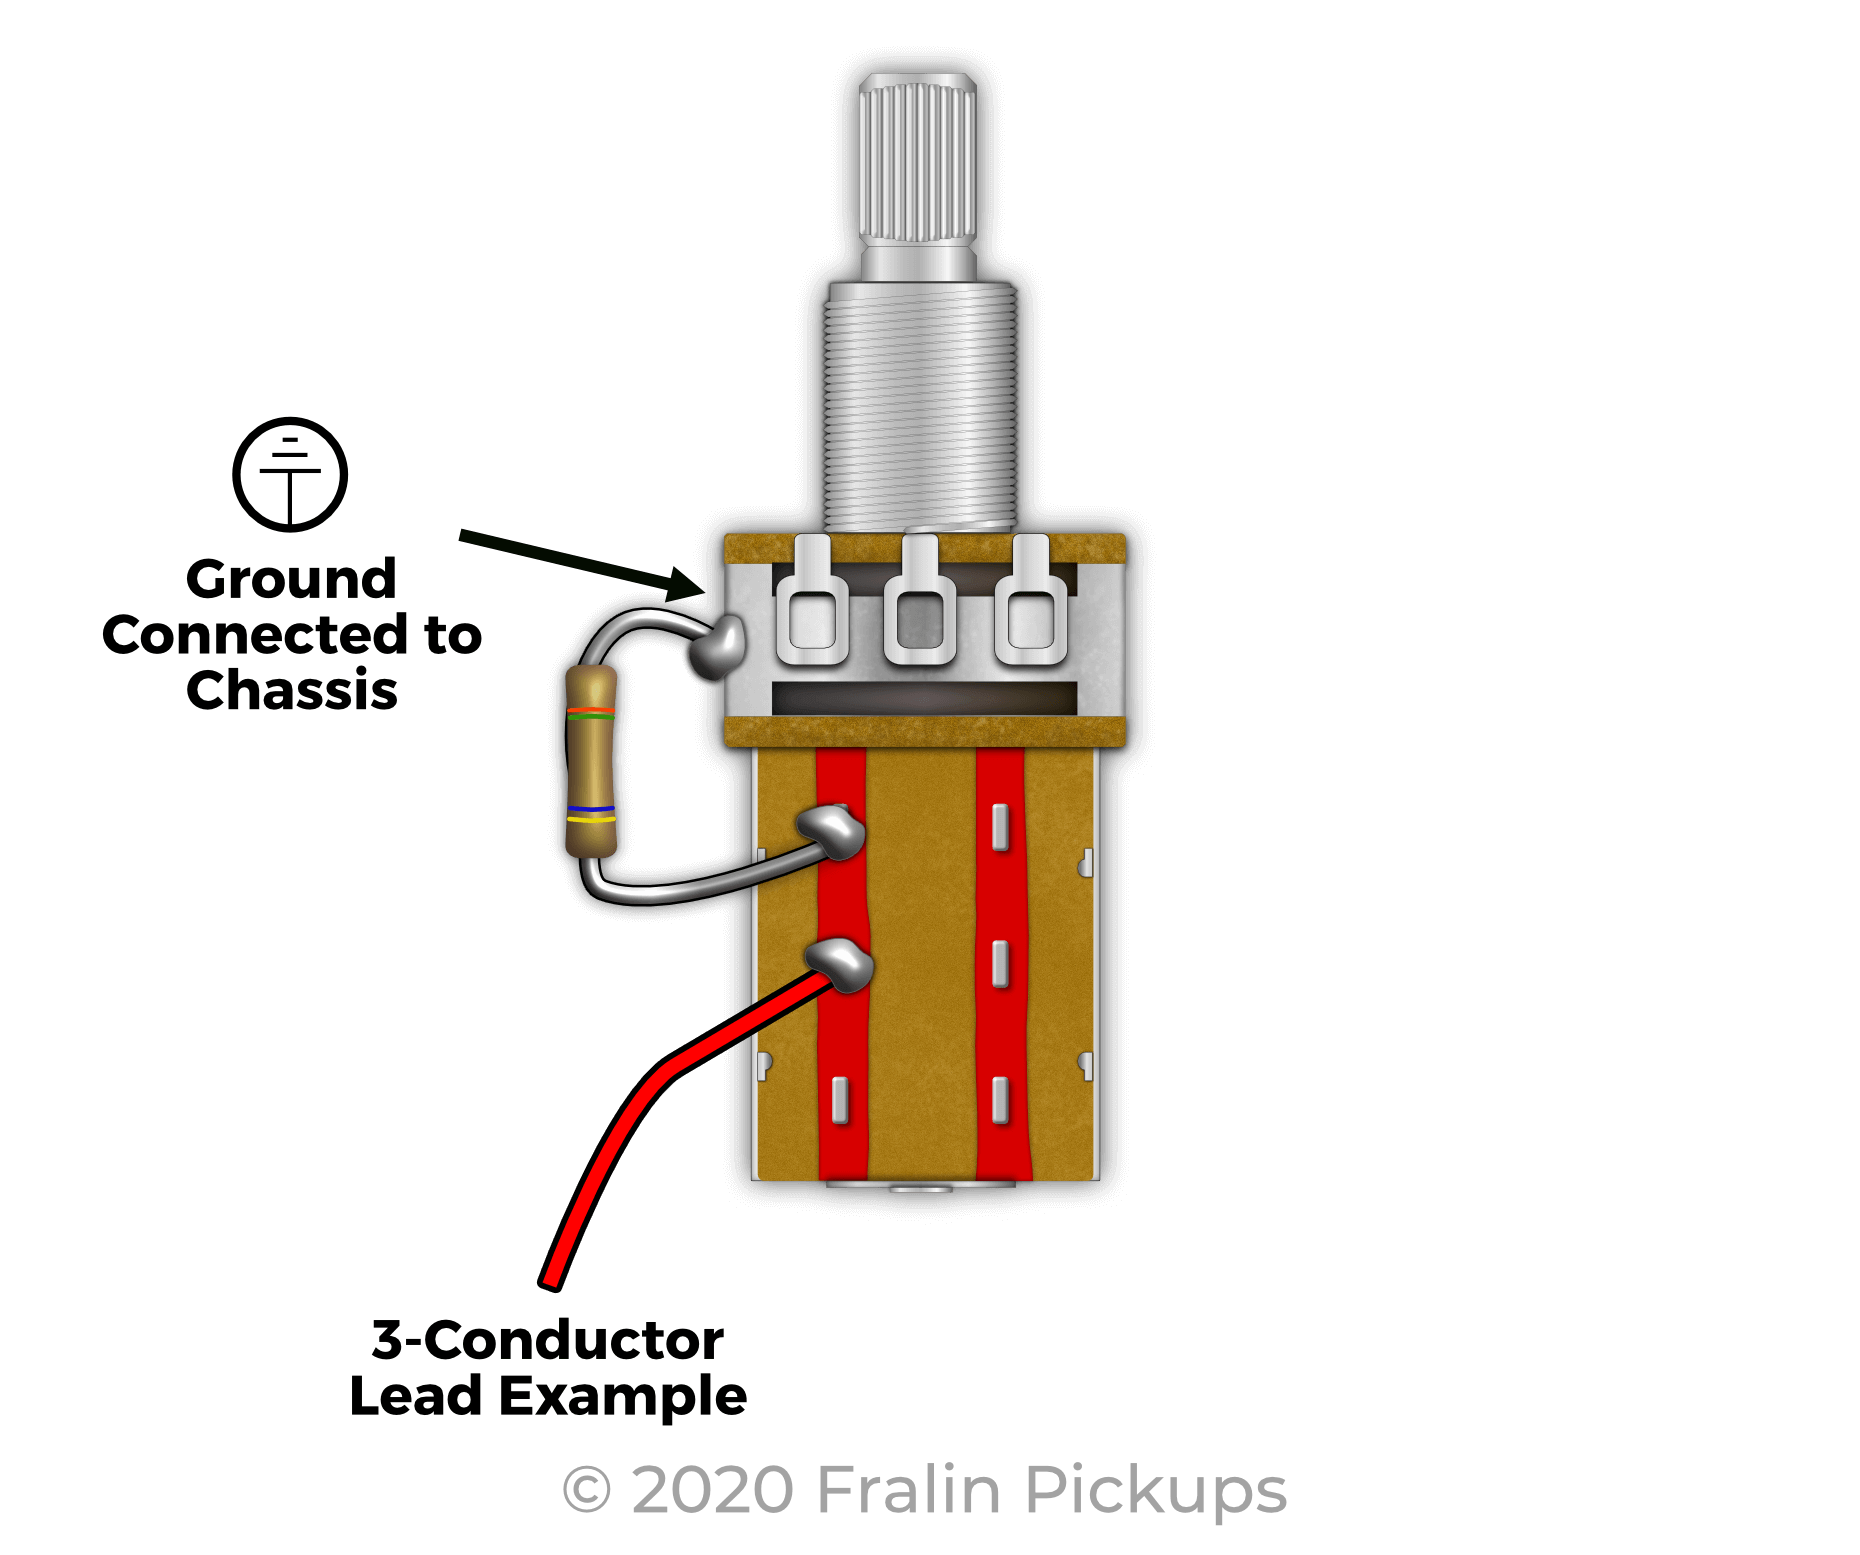 Coil Splitting with a 7K Resistor